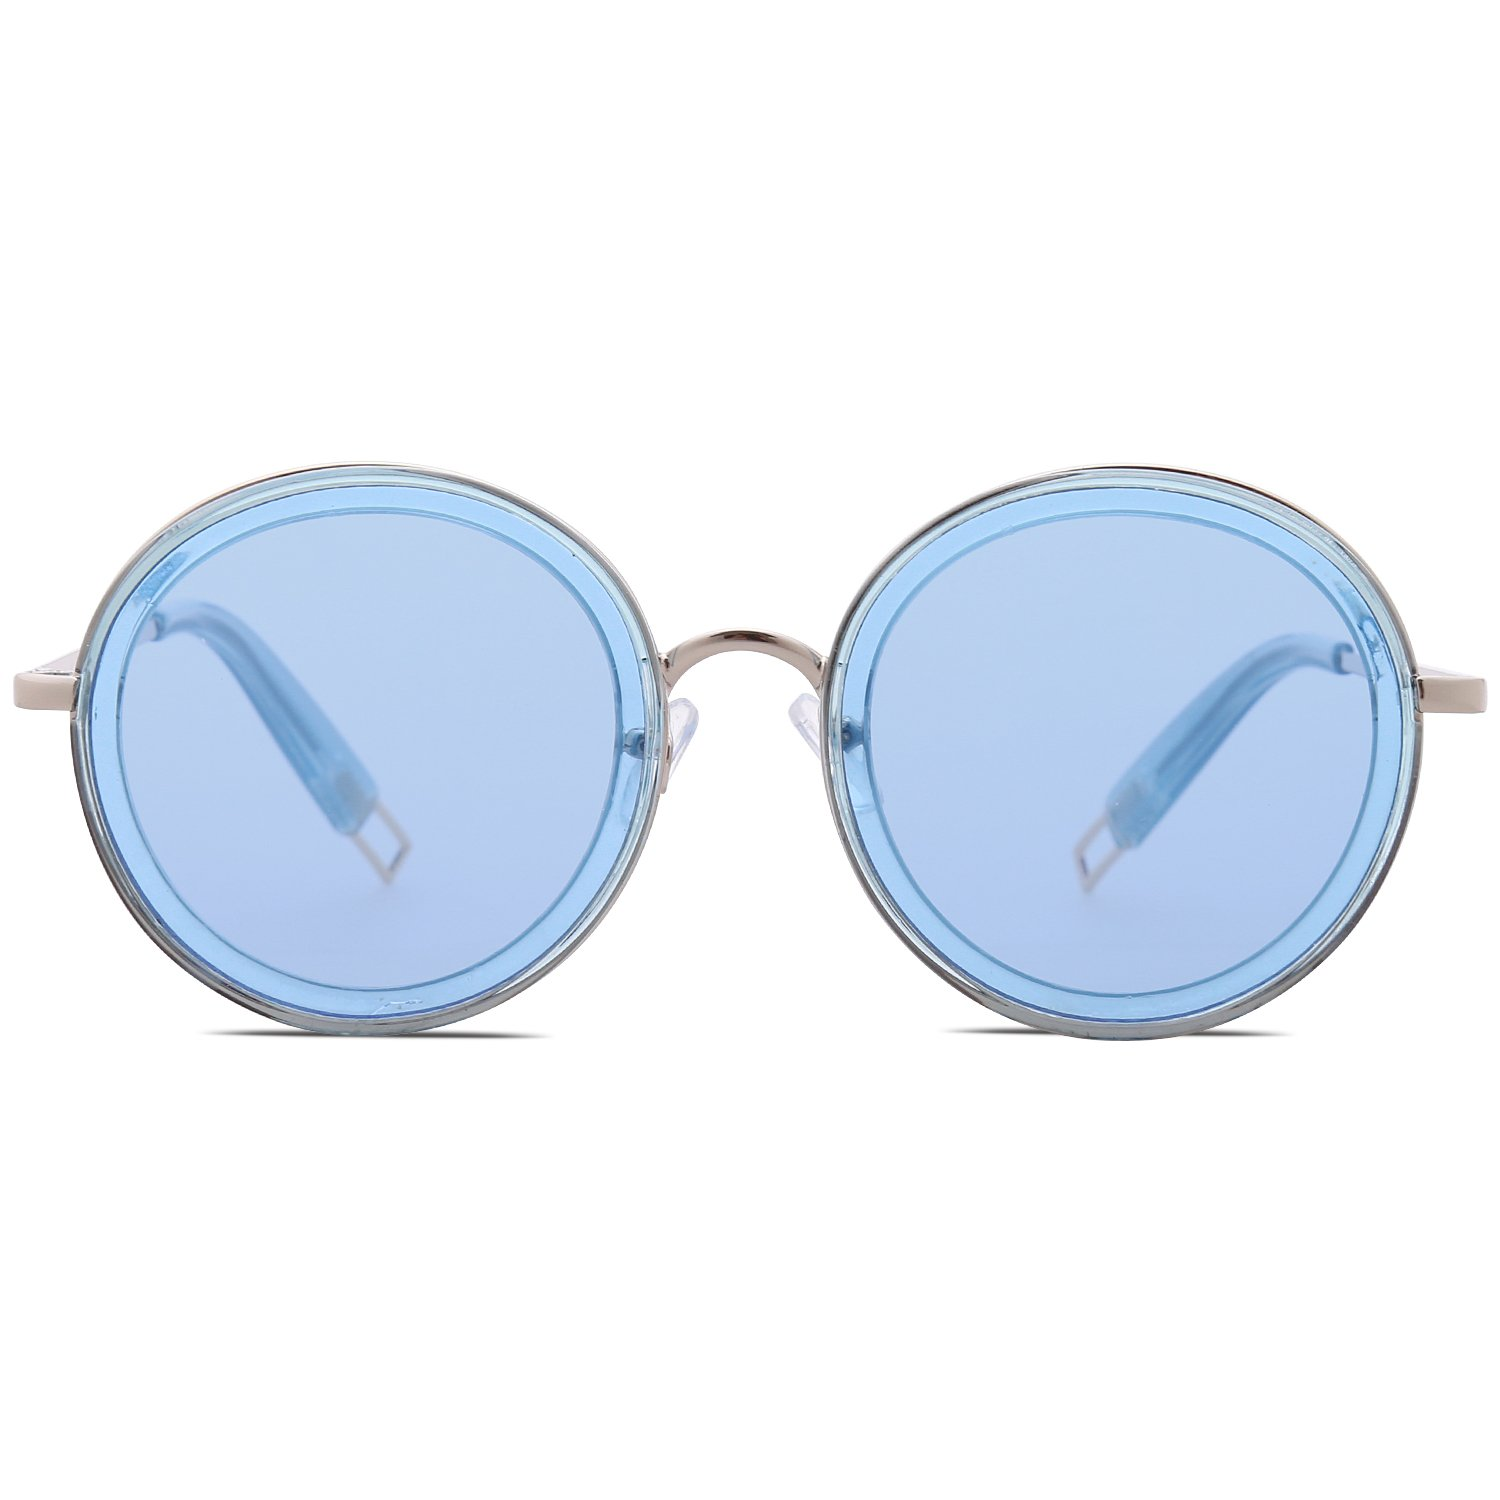 SOJOS Oversized Round Metal Frame Sunglasses Flat Lens UV400 Protection SJ1076 with Blue Frame/Clear Blue Lens by SOJOS